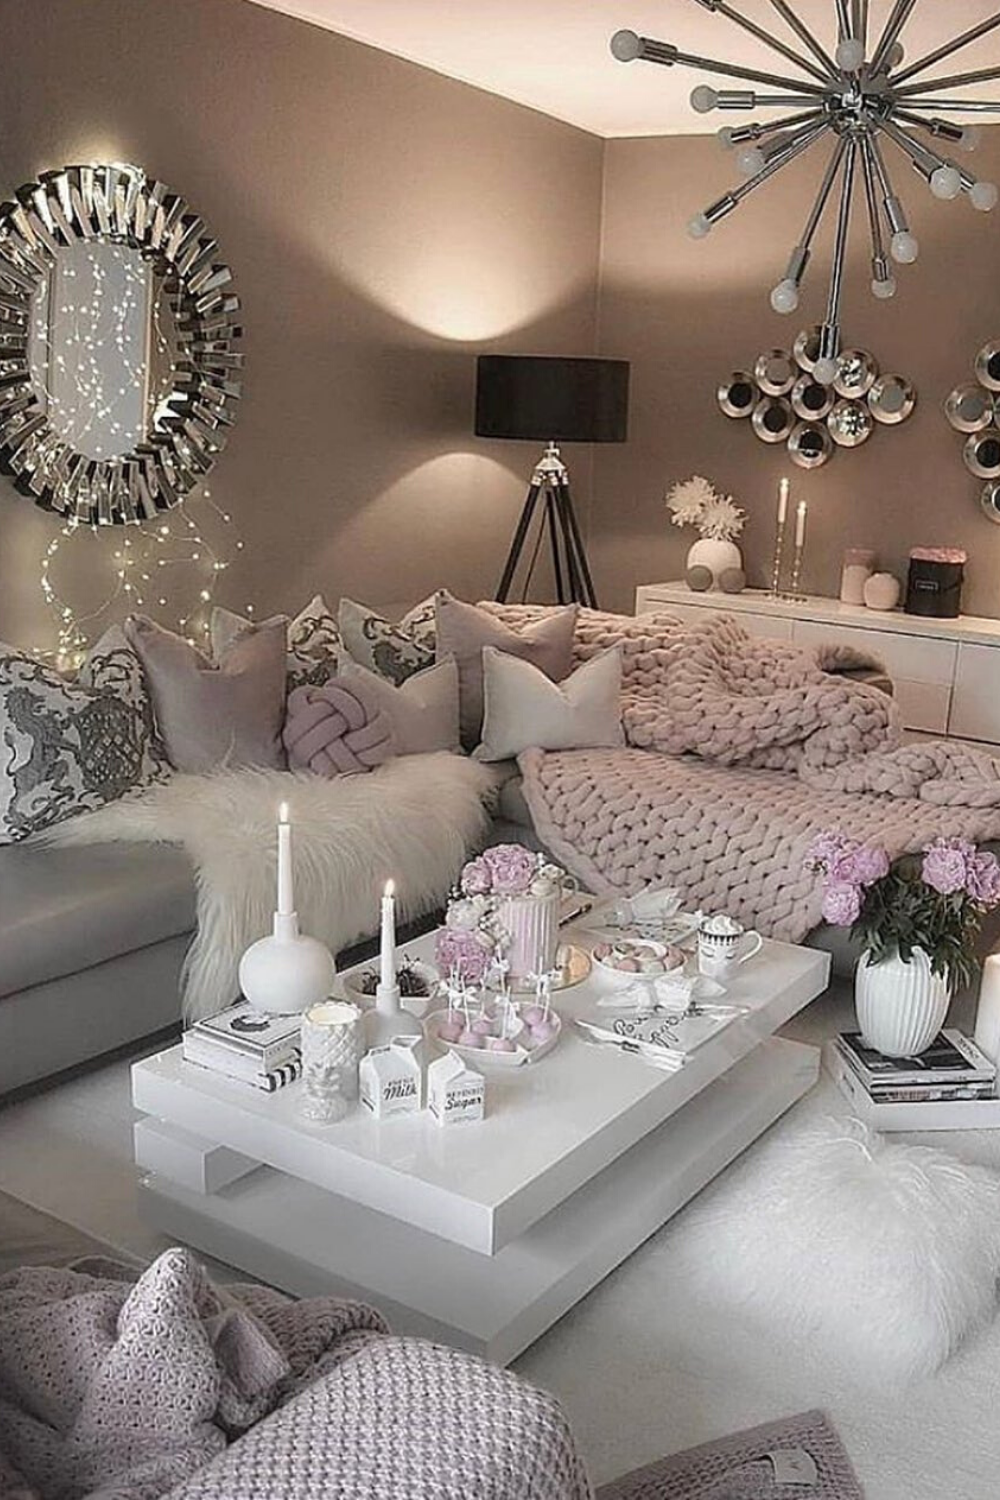 25 Modern Living Room Decor Ideas For Any Budget In 2020 Ele